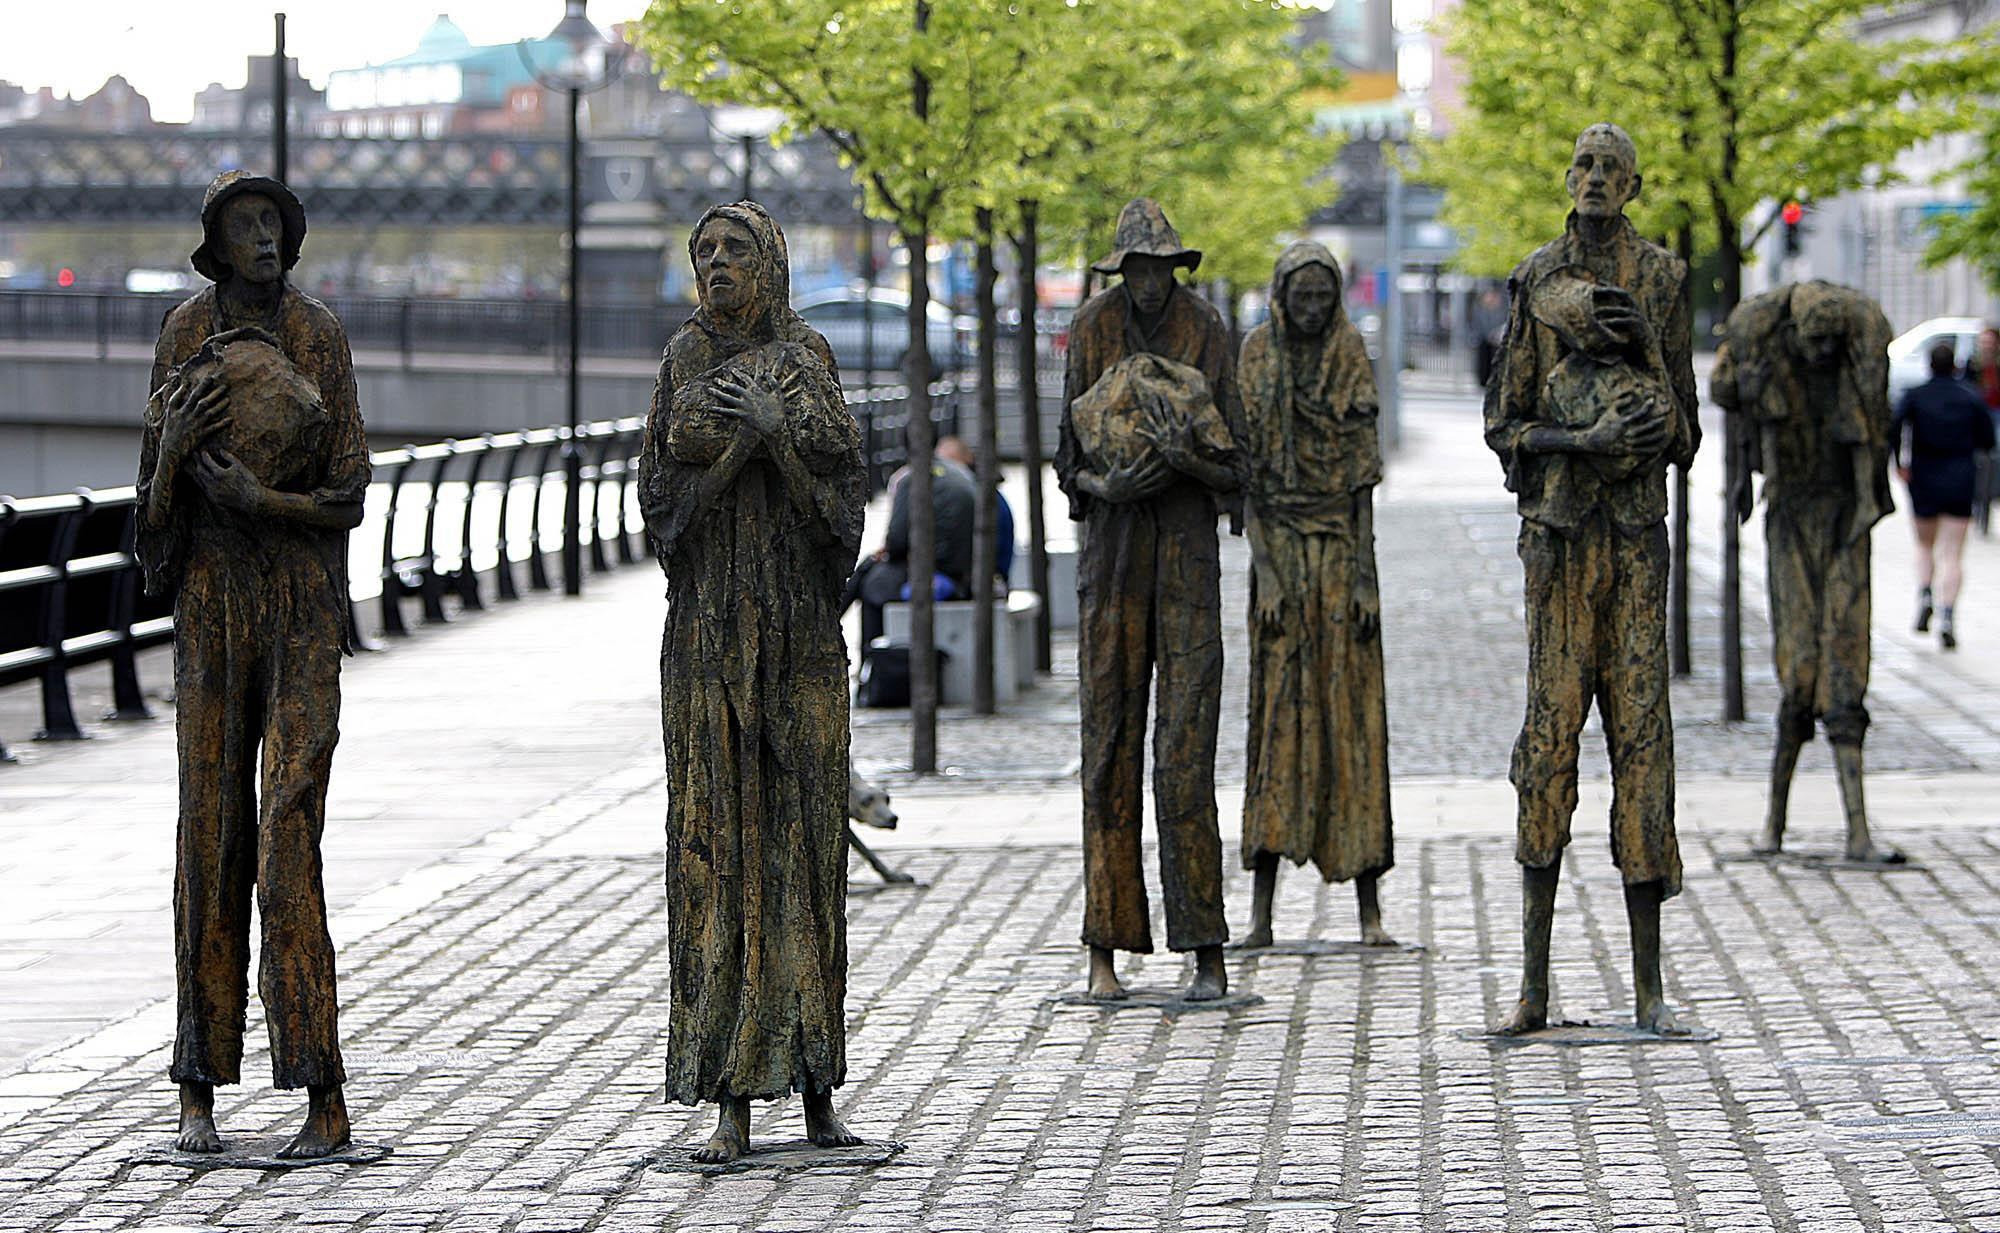 A memorial for victims of the Irish Famine in Dublin. Credit: PA